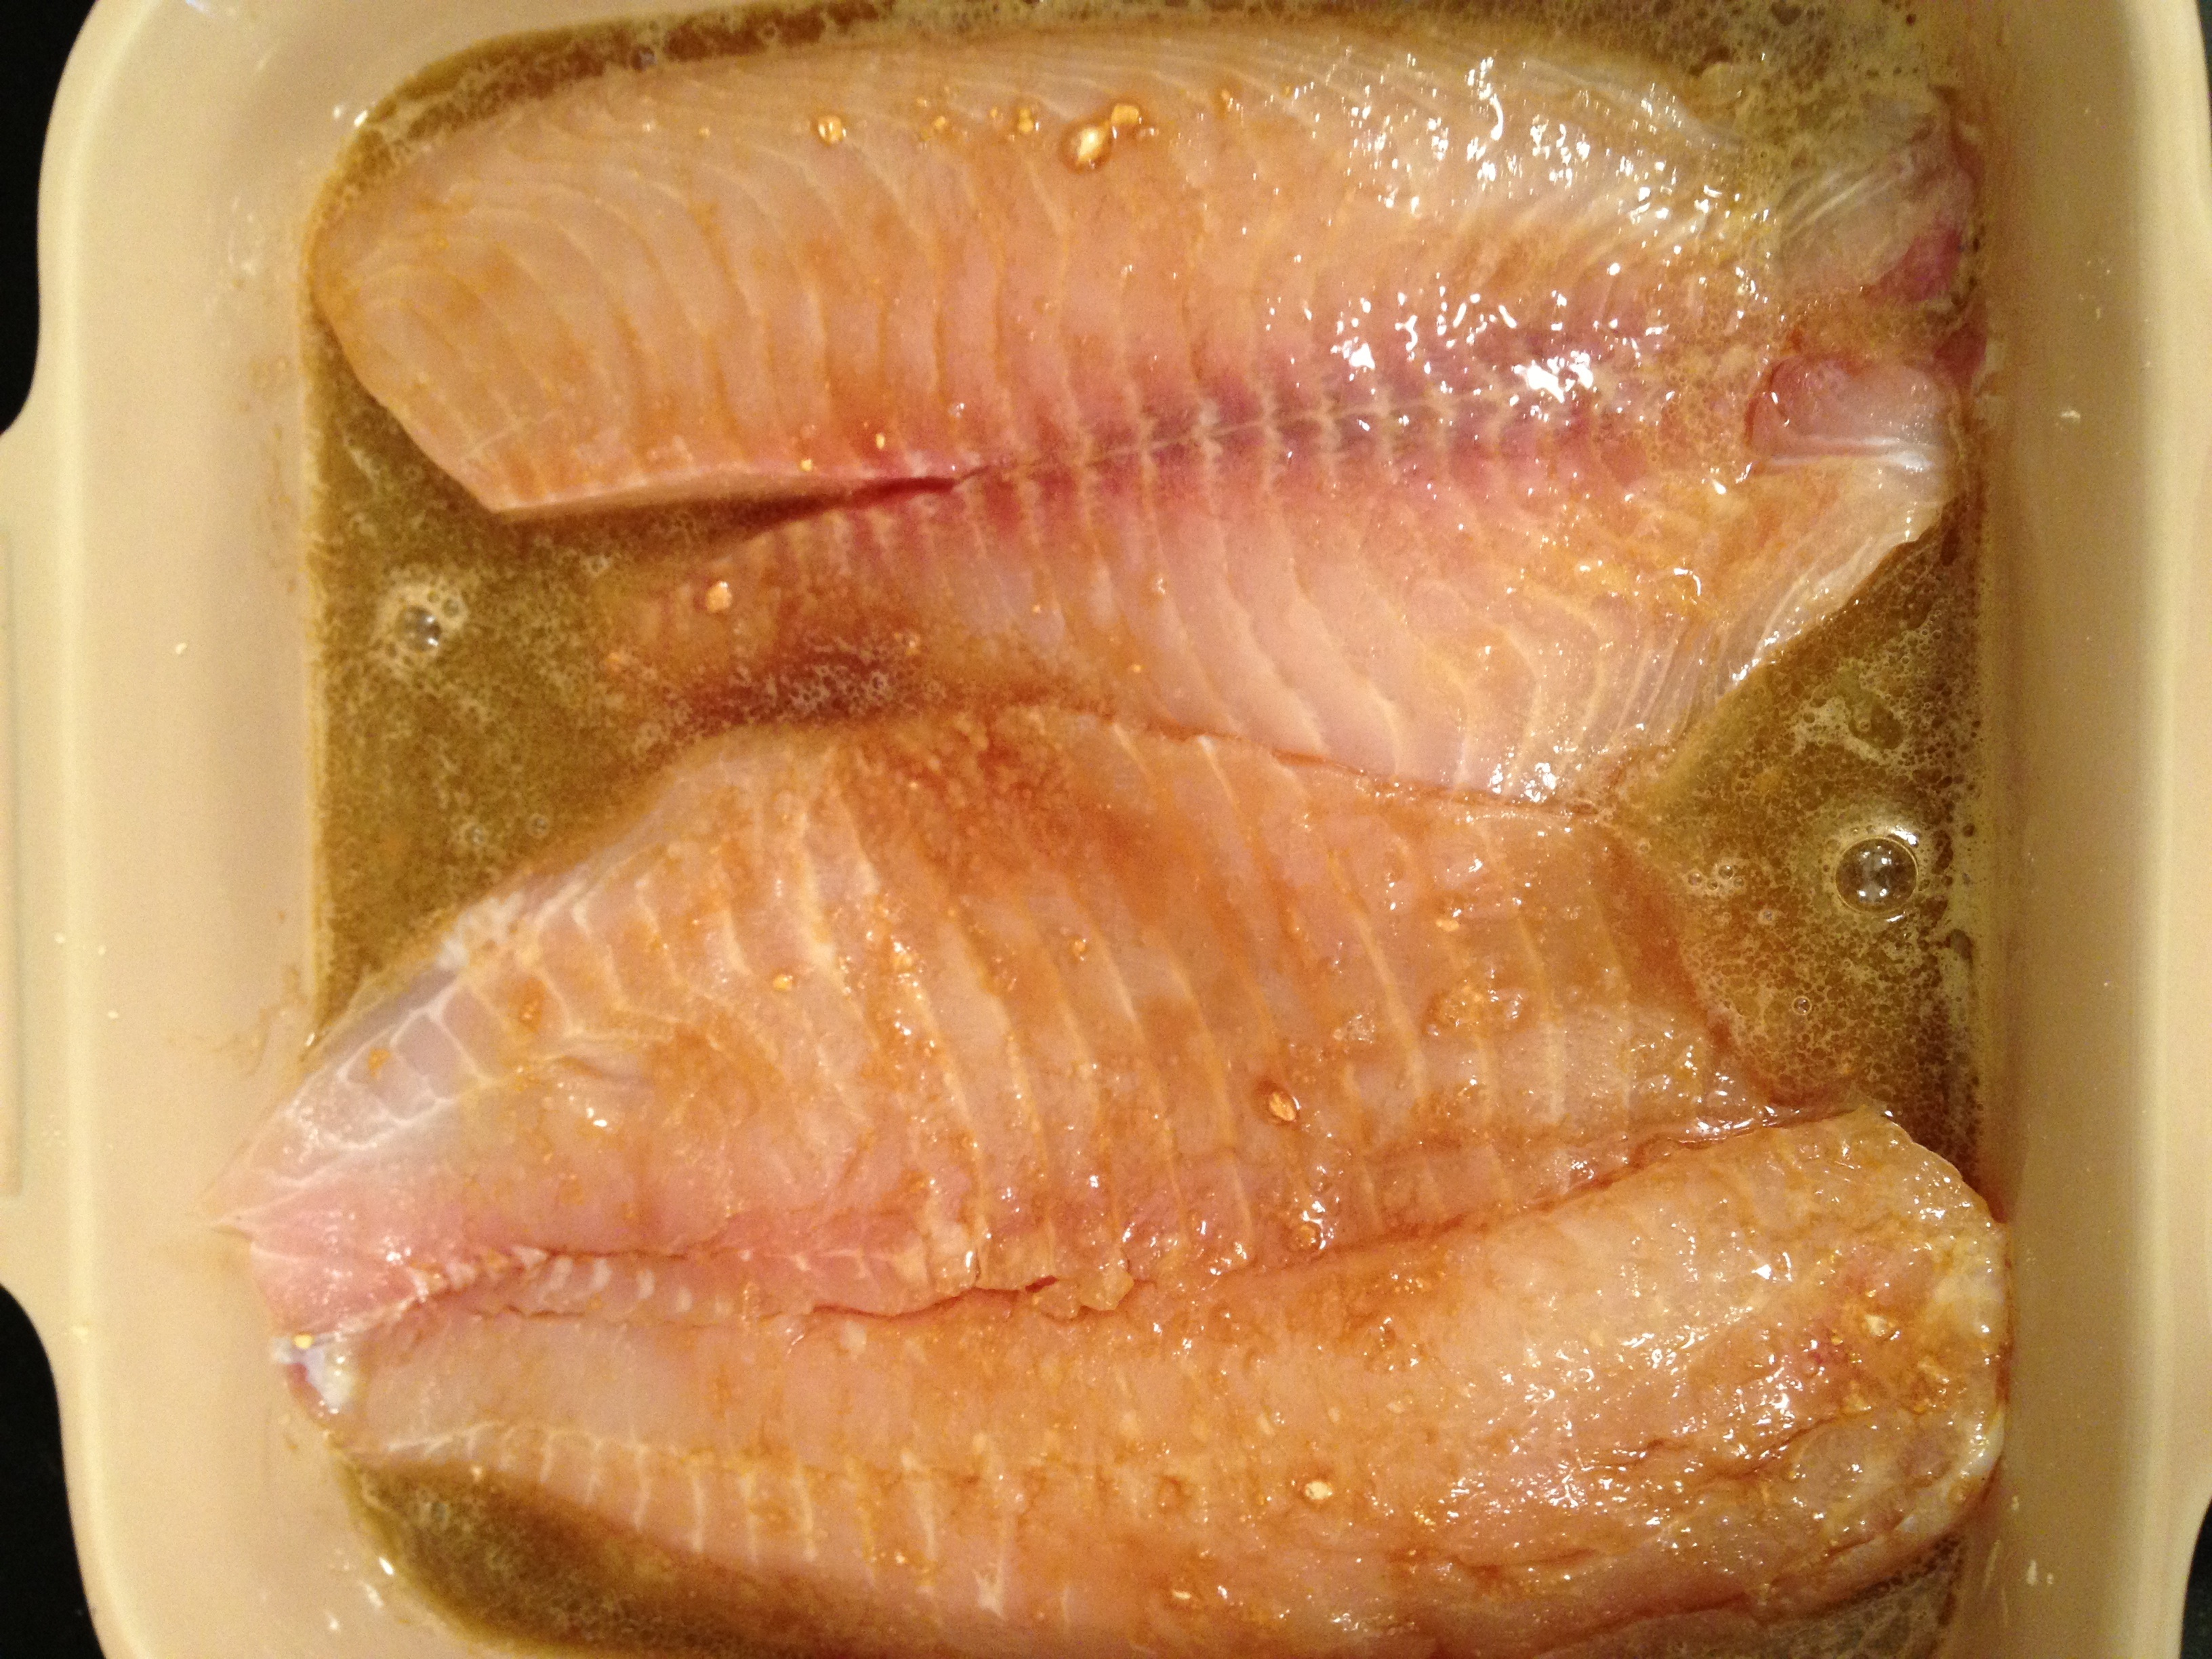 Broiled tilapia fillets my judy the foodie for What is tilapia fish